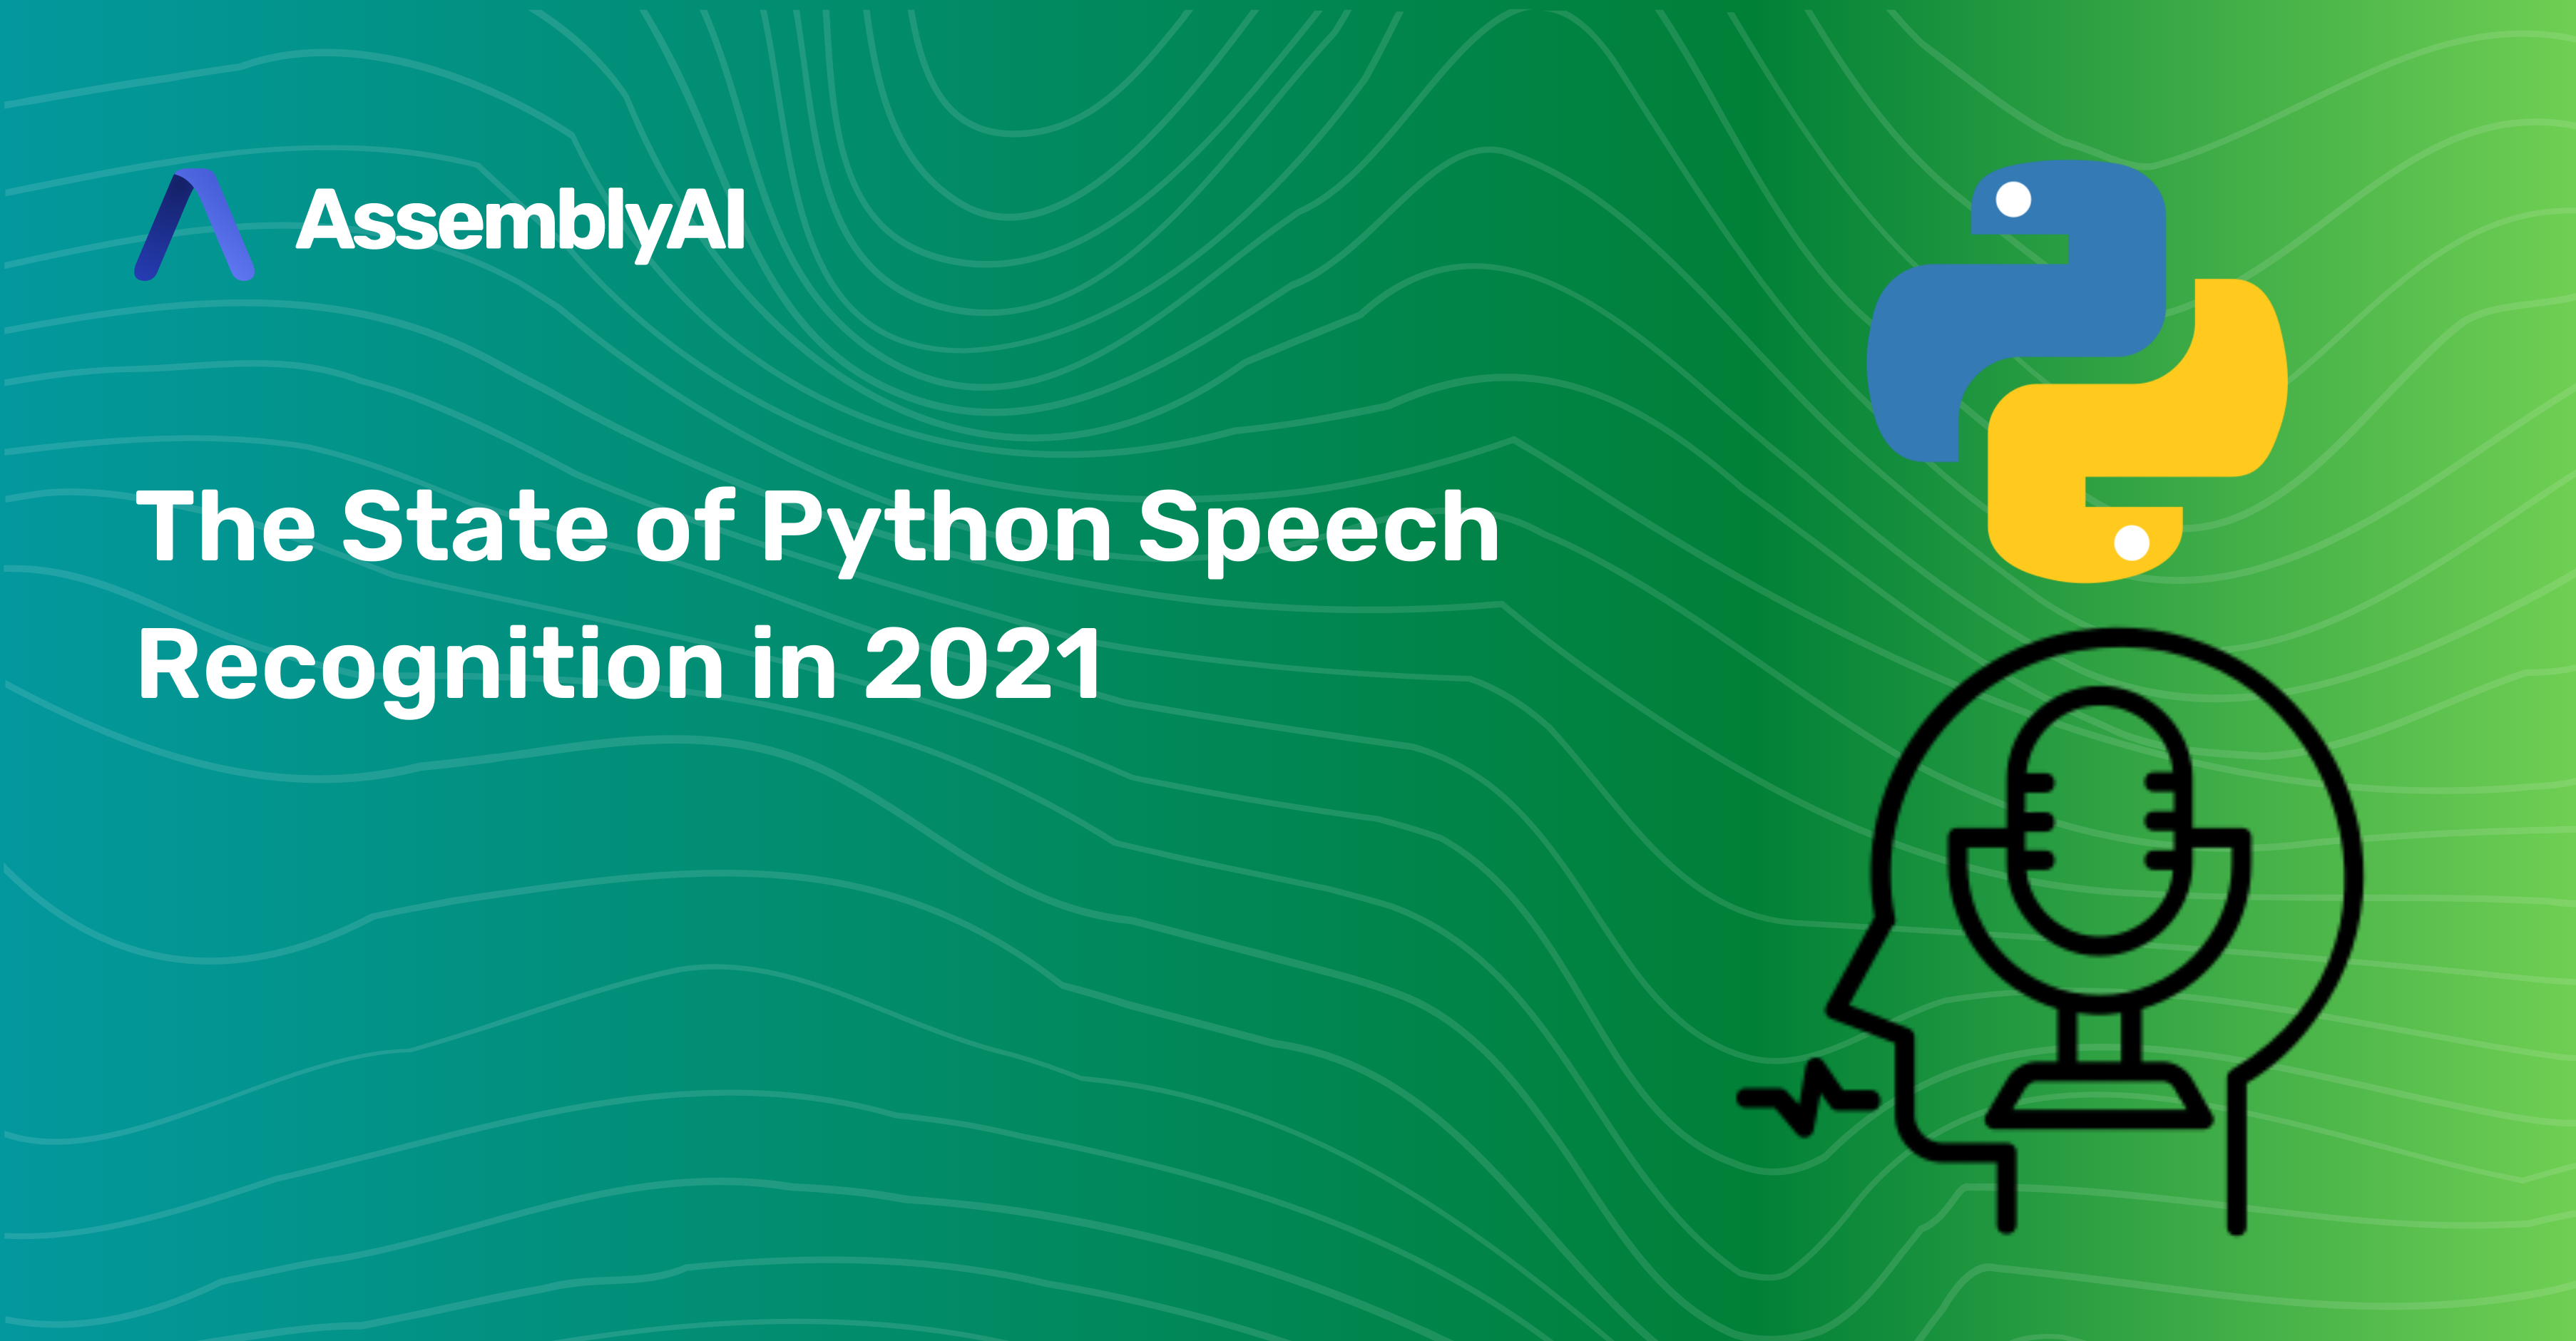 The State of Python Speech Recognition in 2021